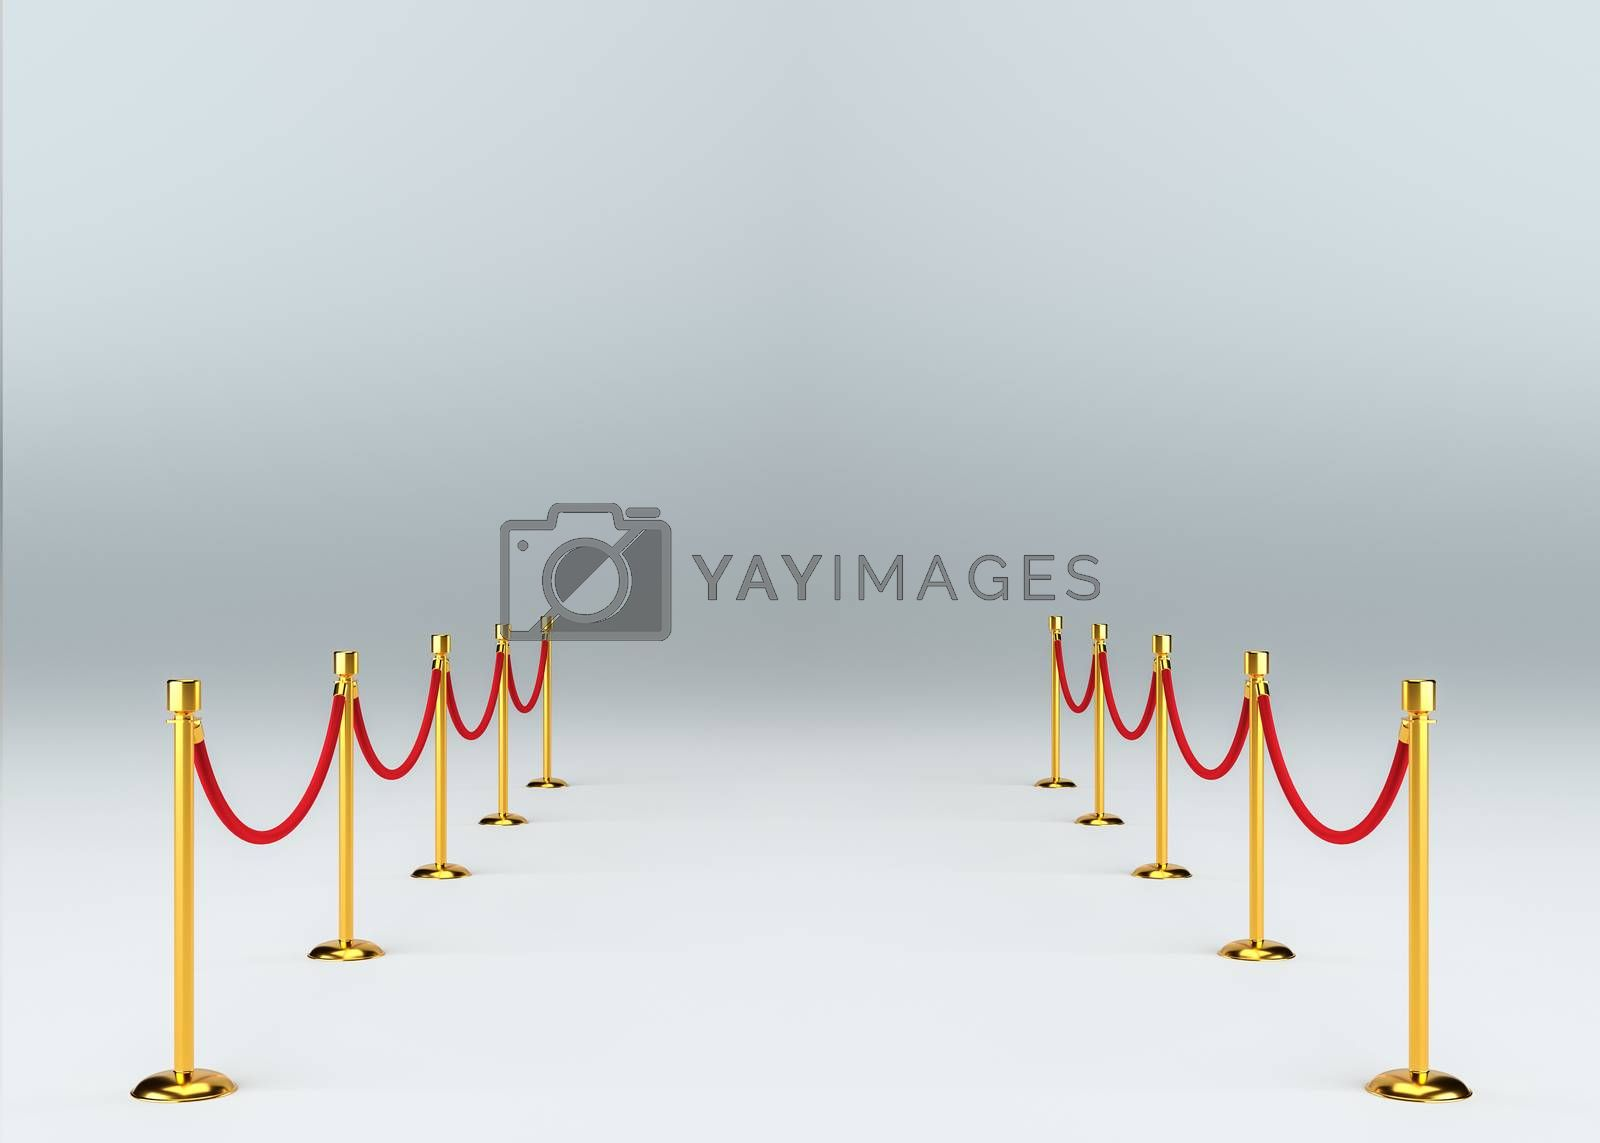 Studio interior with barrier. 3d illustration. Template for your design